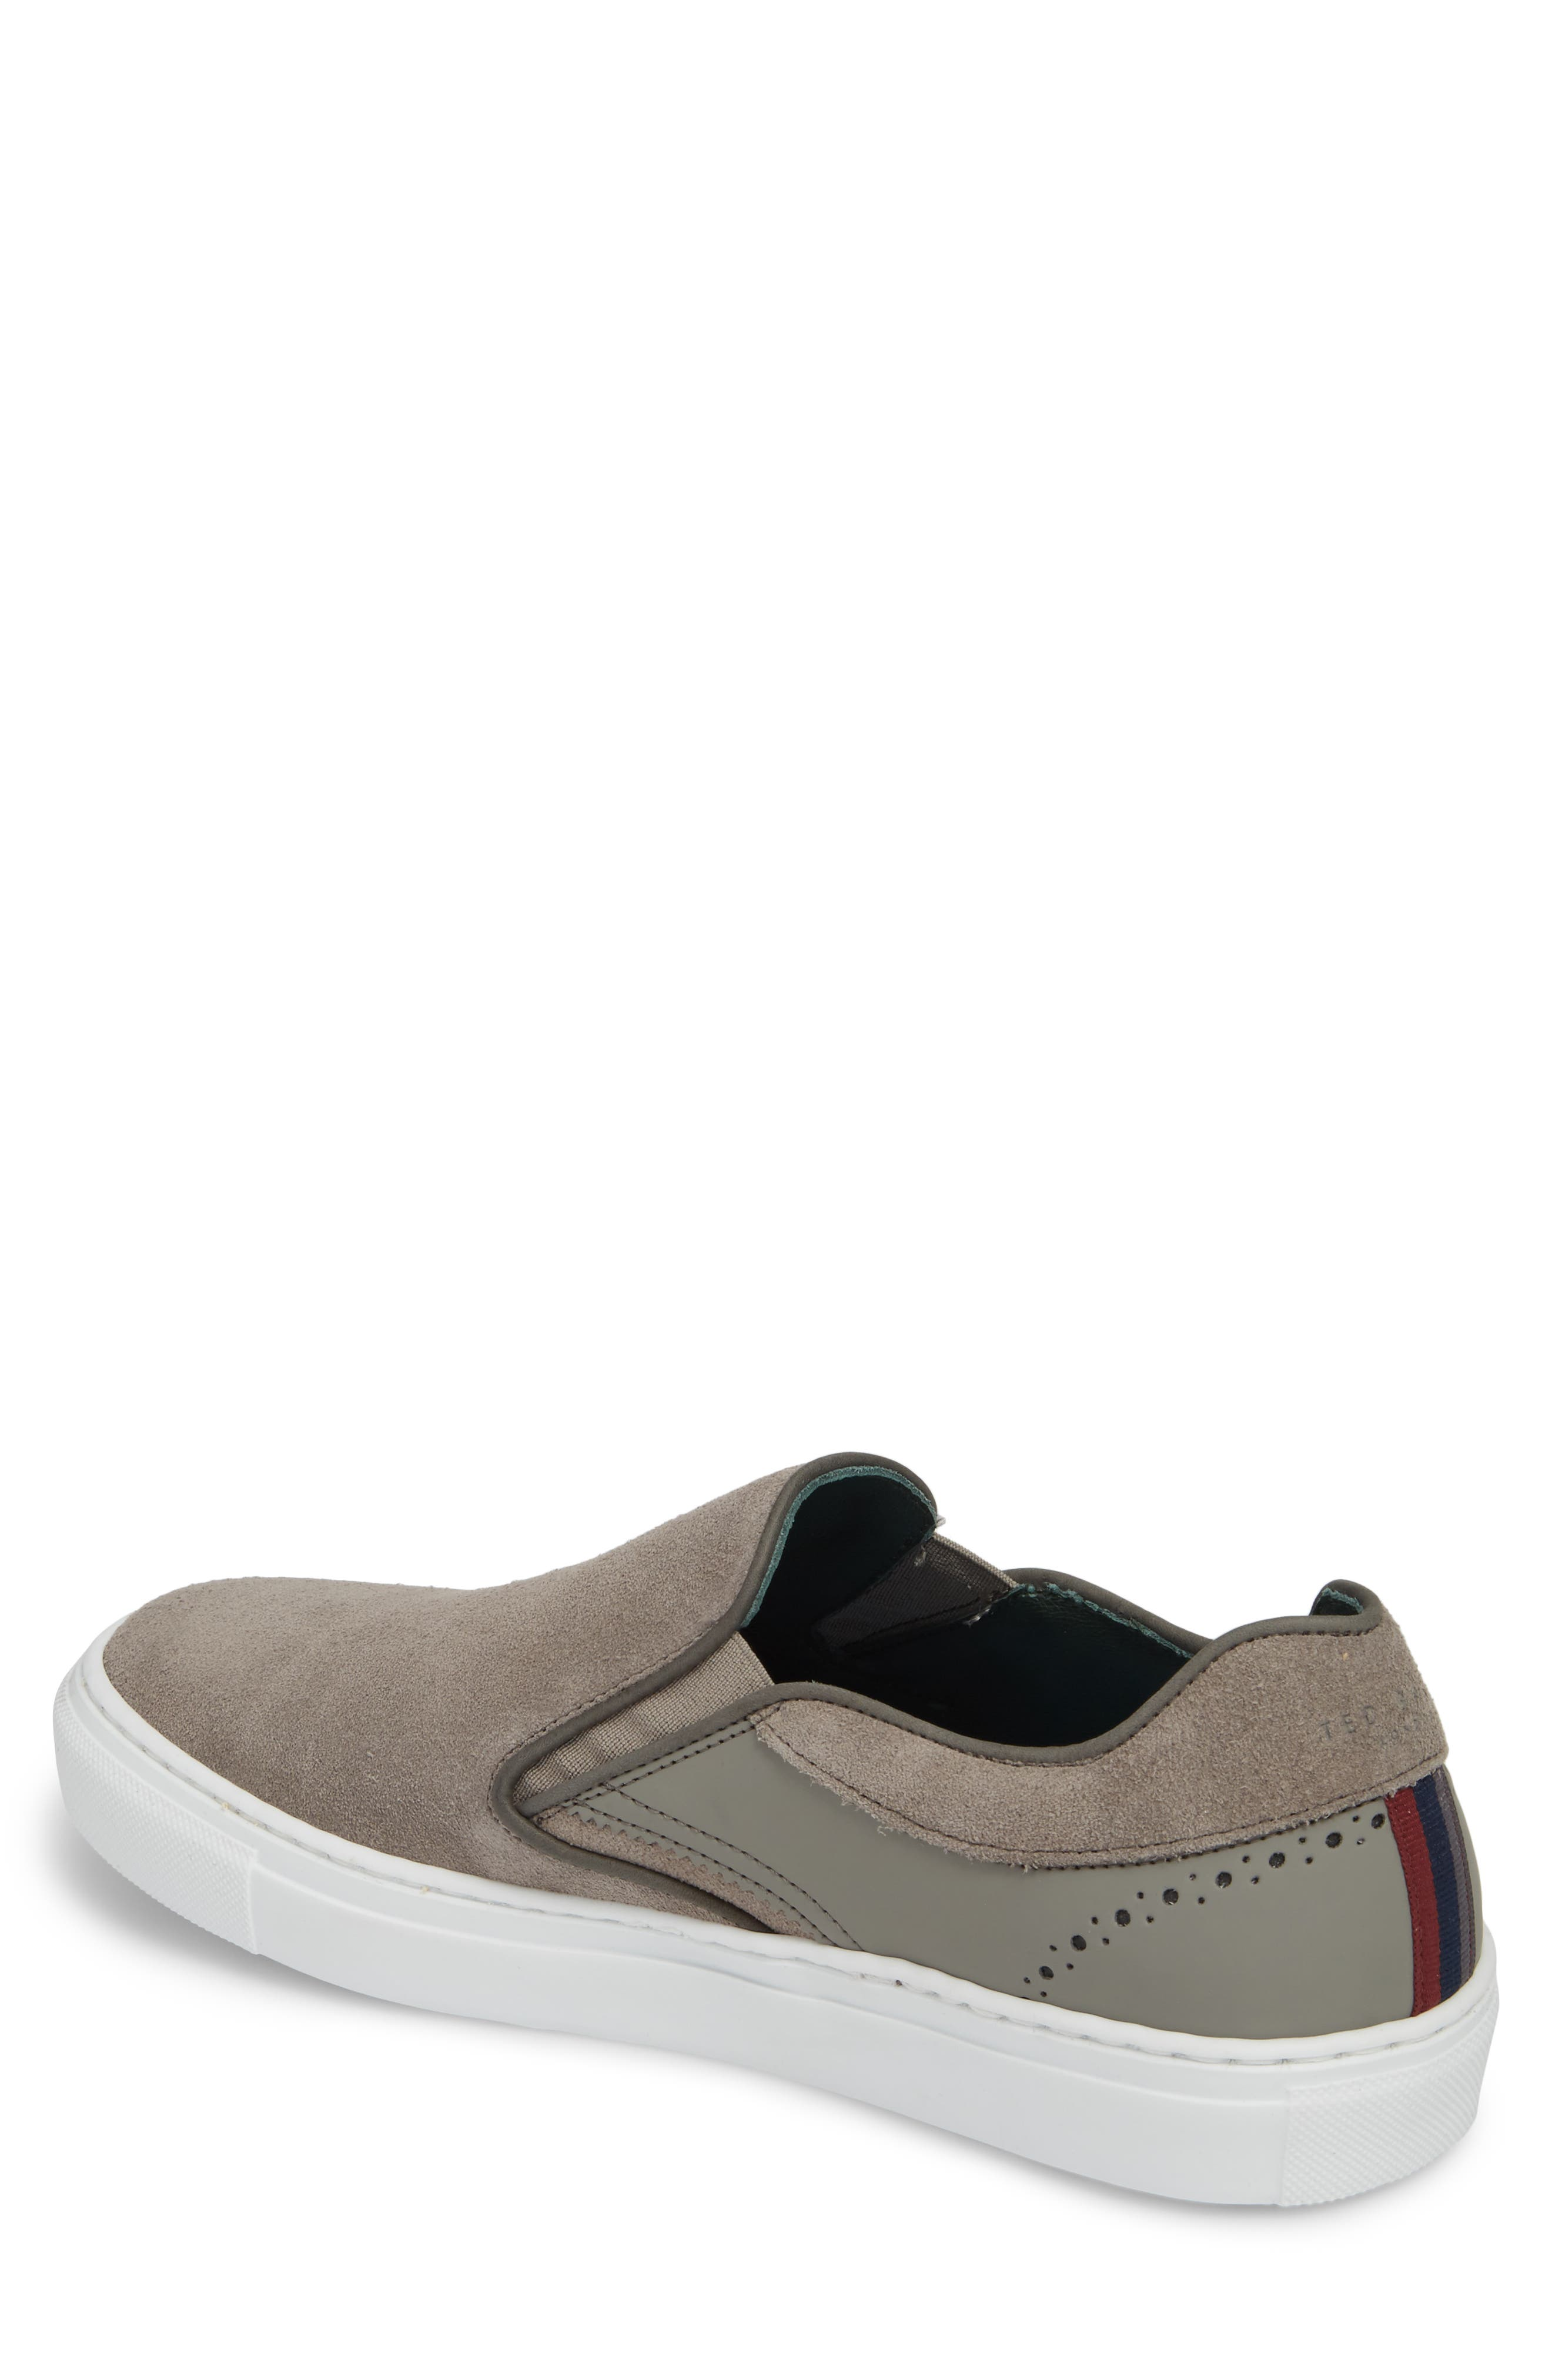 Reaine Brogued Slip-On Sneaker,                             Alternate thumbnail 2, color,                             LIGHT GREY LEATHER